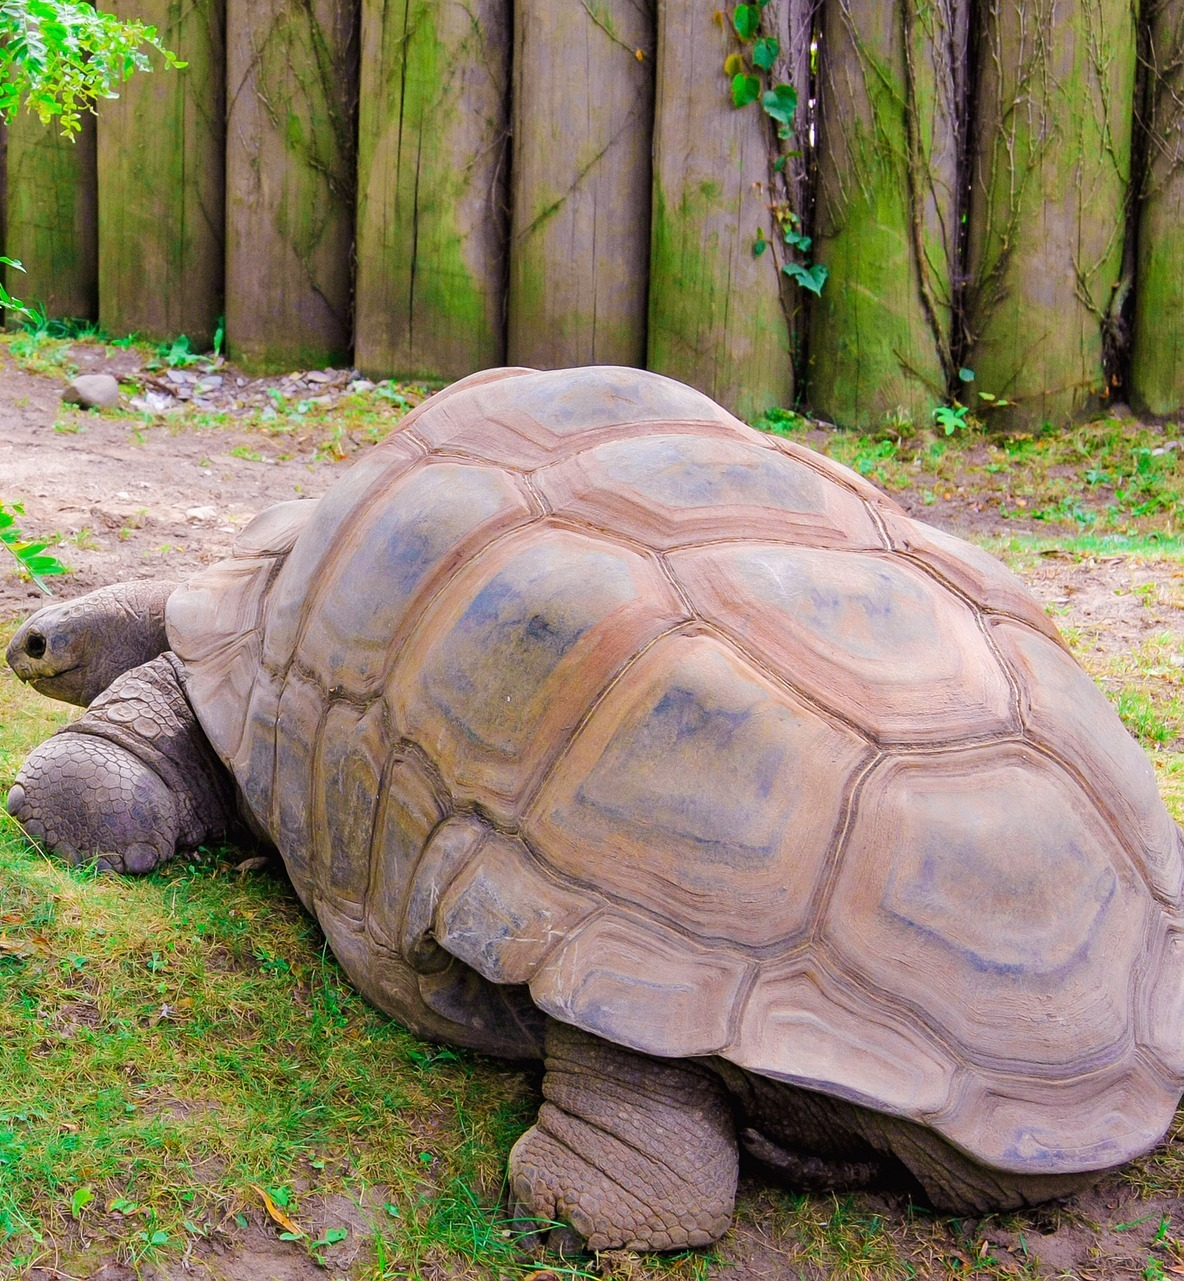 Picture of a giant tortoise.